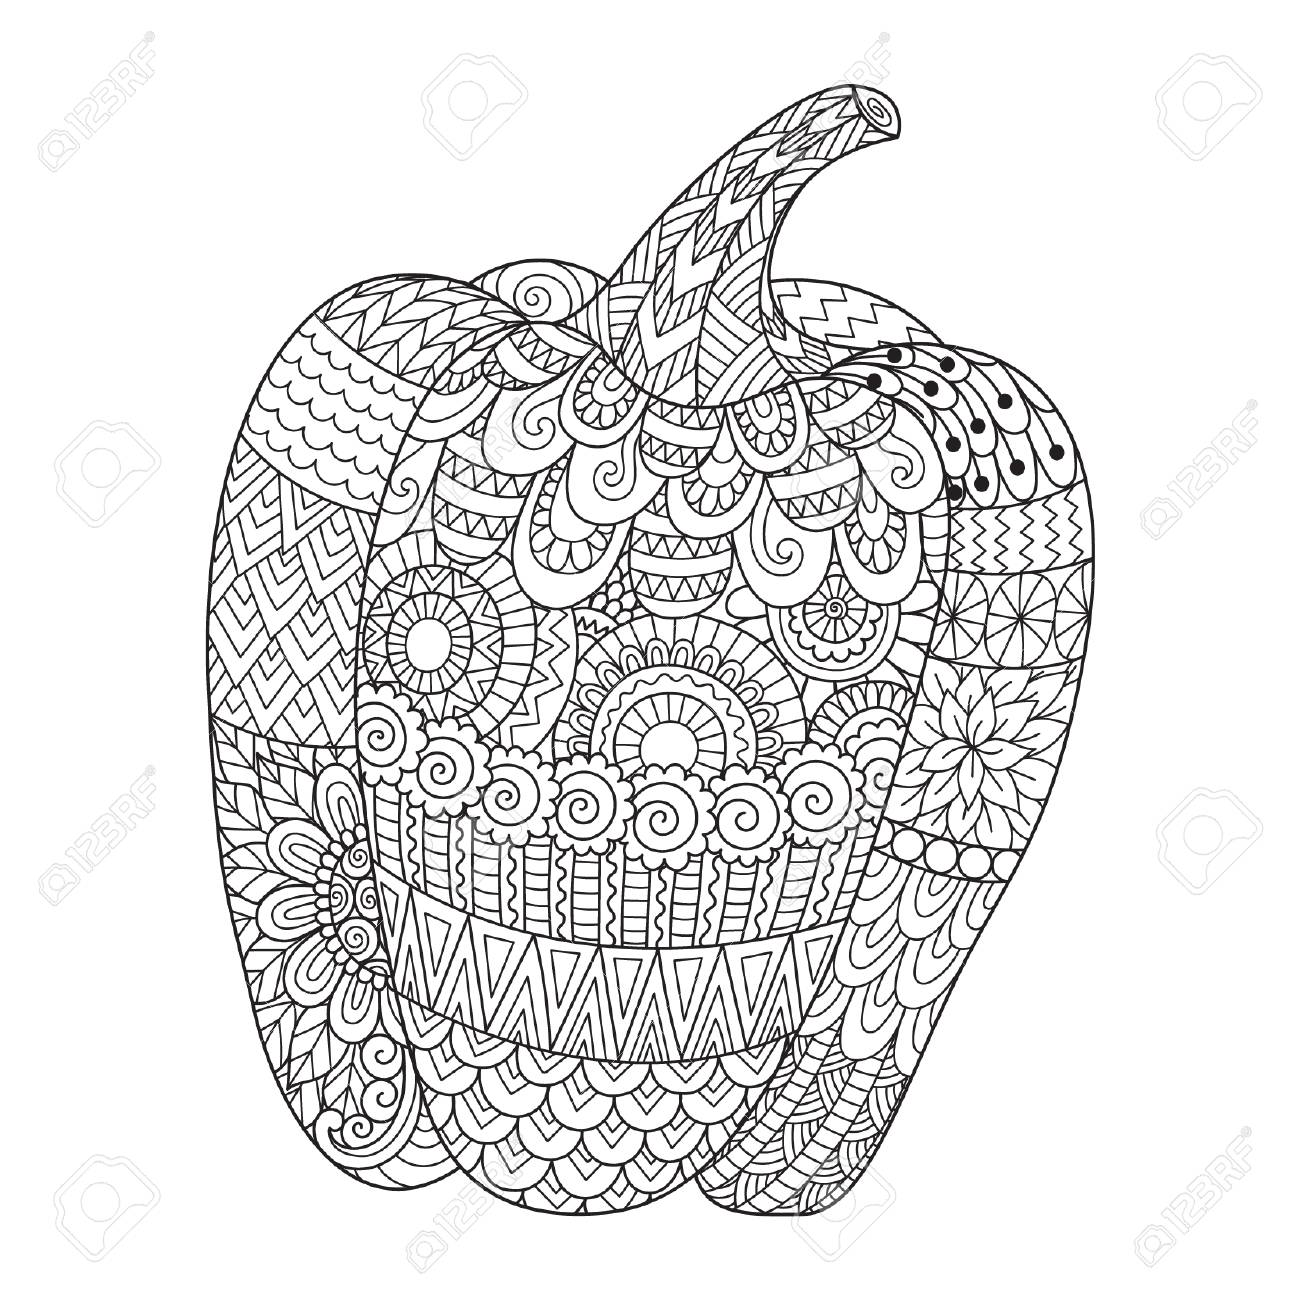 - Line Art Design Of Sweet Pepper For Printing On Stuffs And Adult